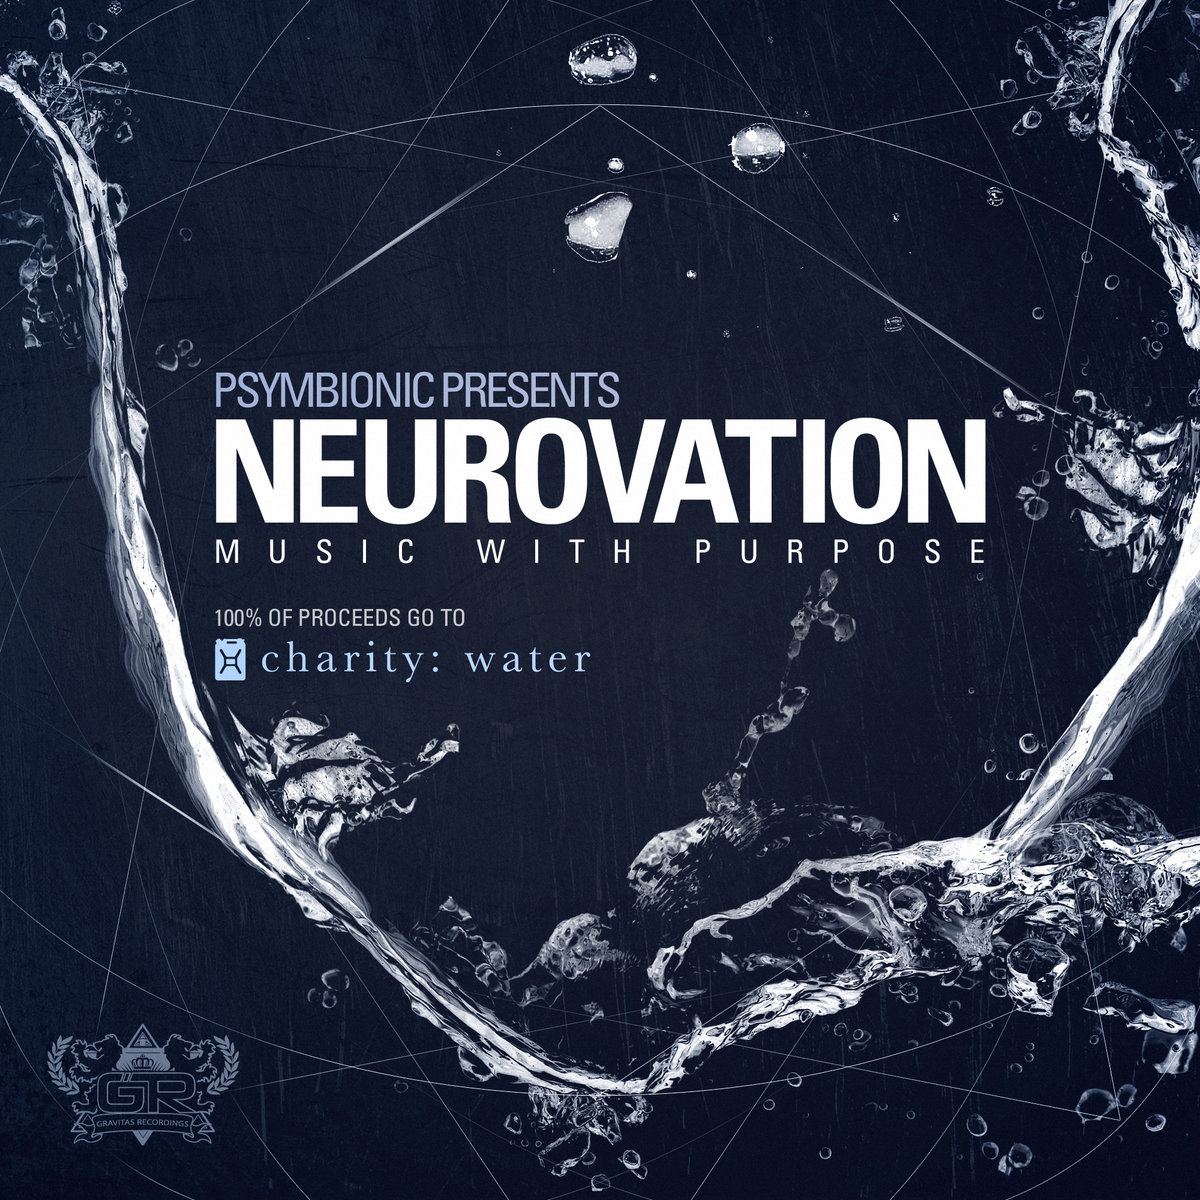 Gramatik - 23 Flavors @ 'Psymbionic Presents: Neurovation' album (cryptex, glitch hop)